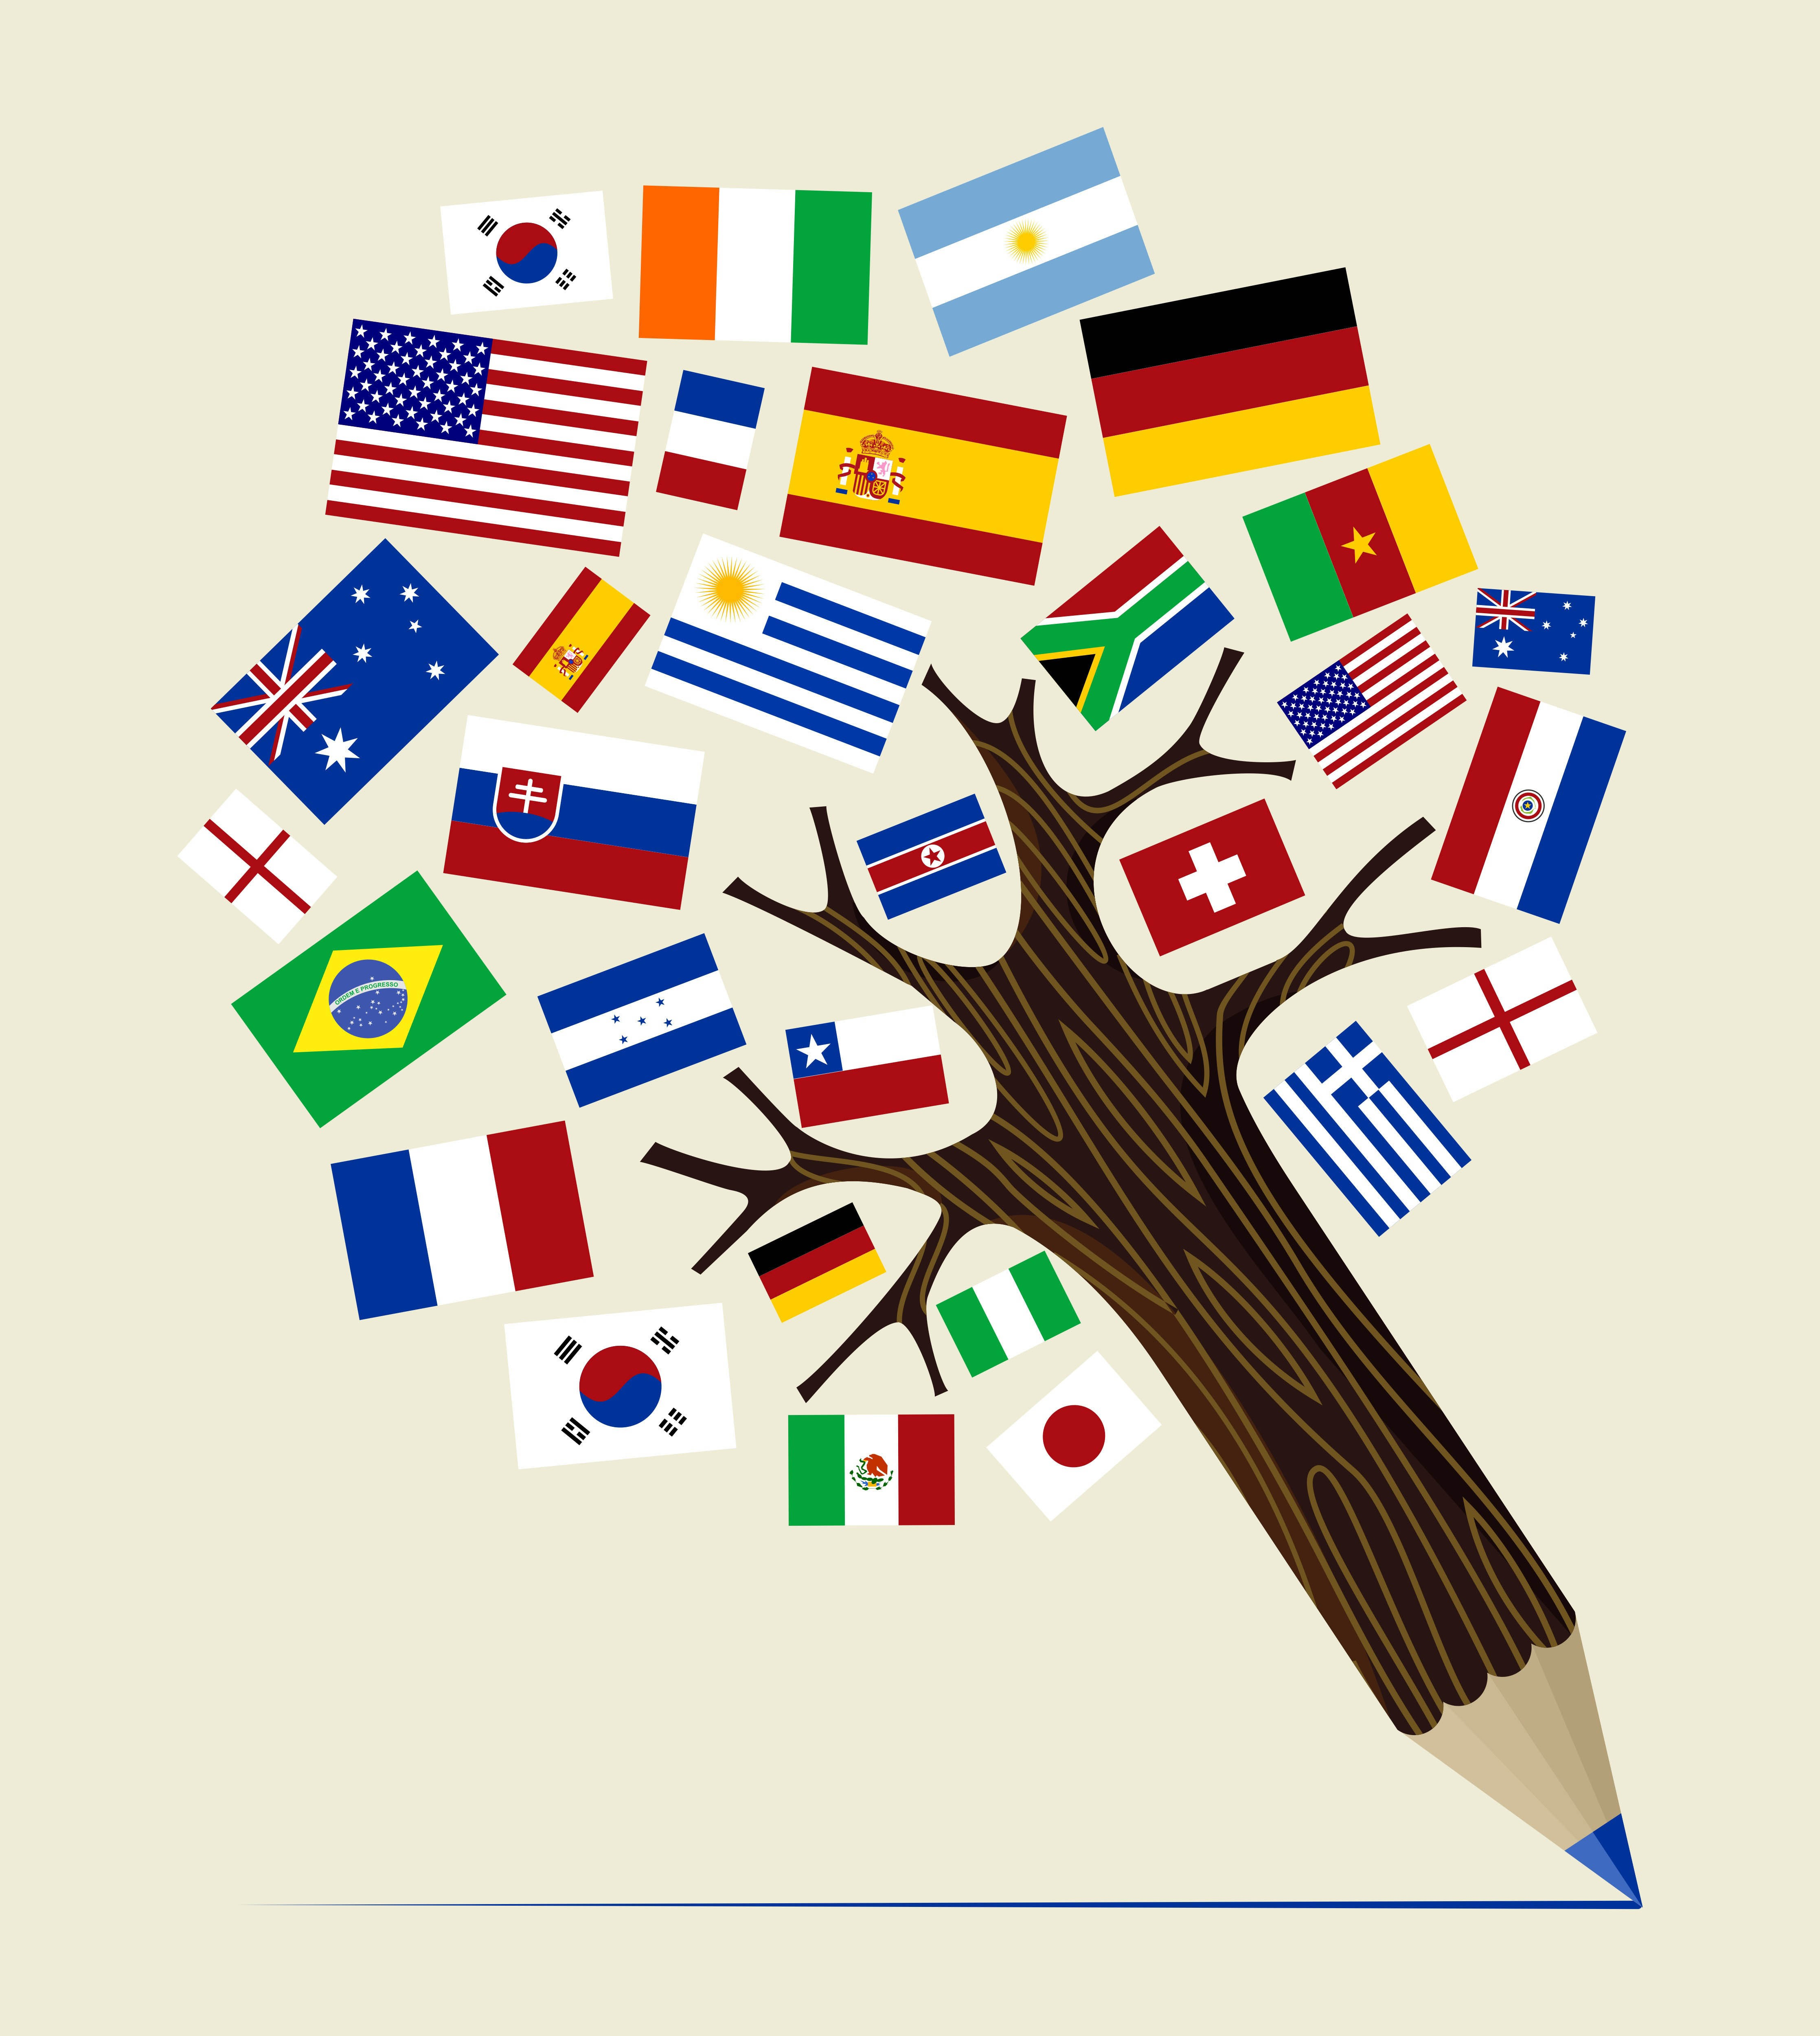 A picture of a pencil shaped like a tree with different flags